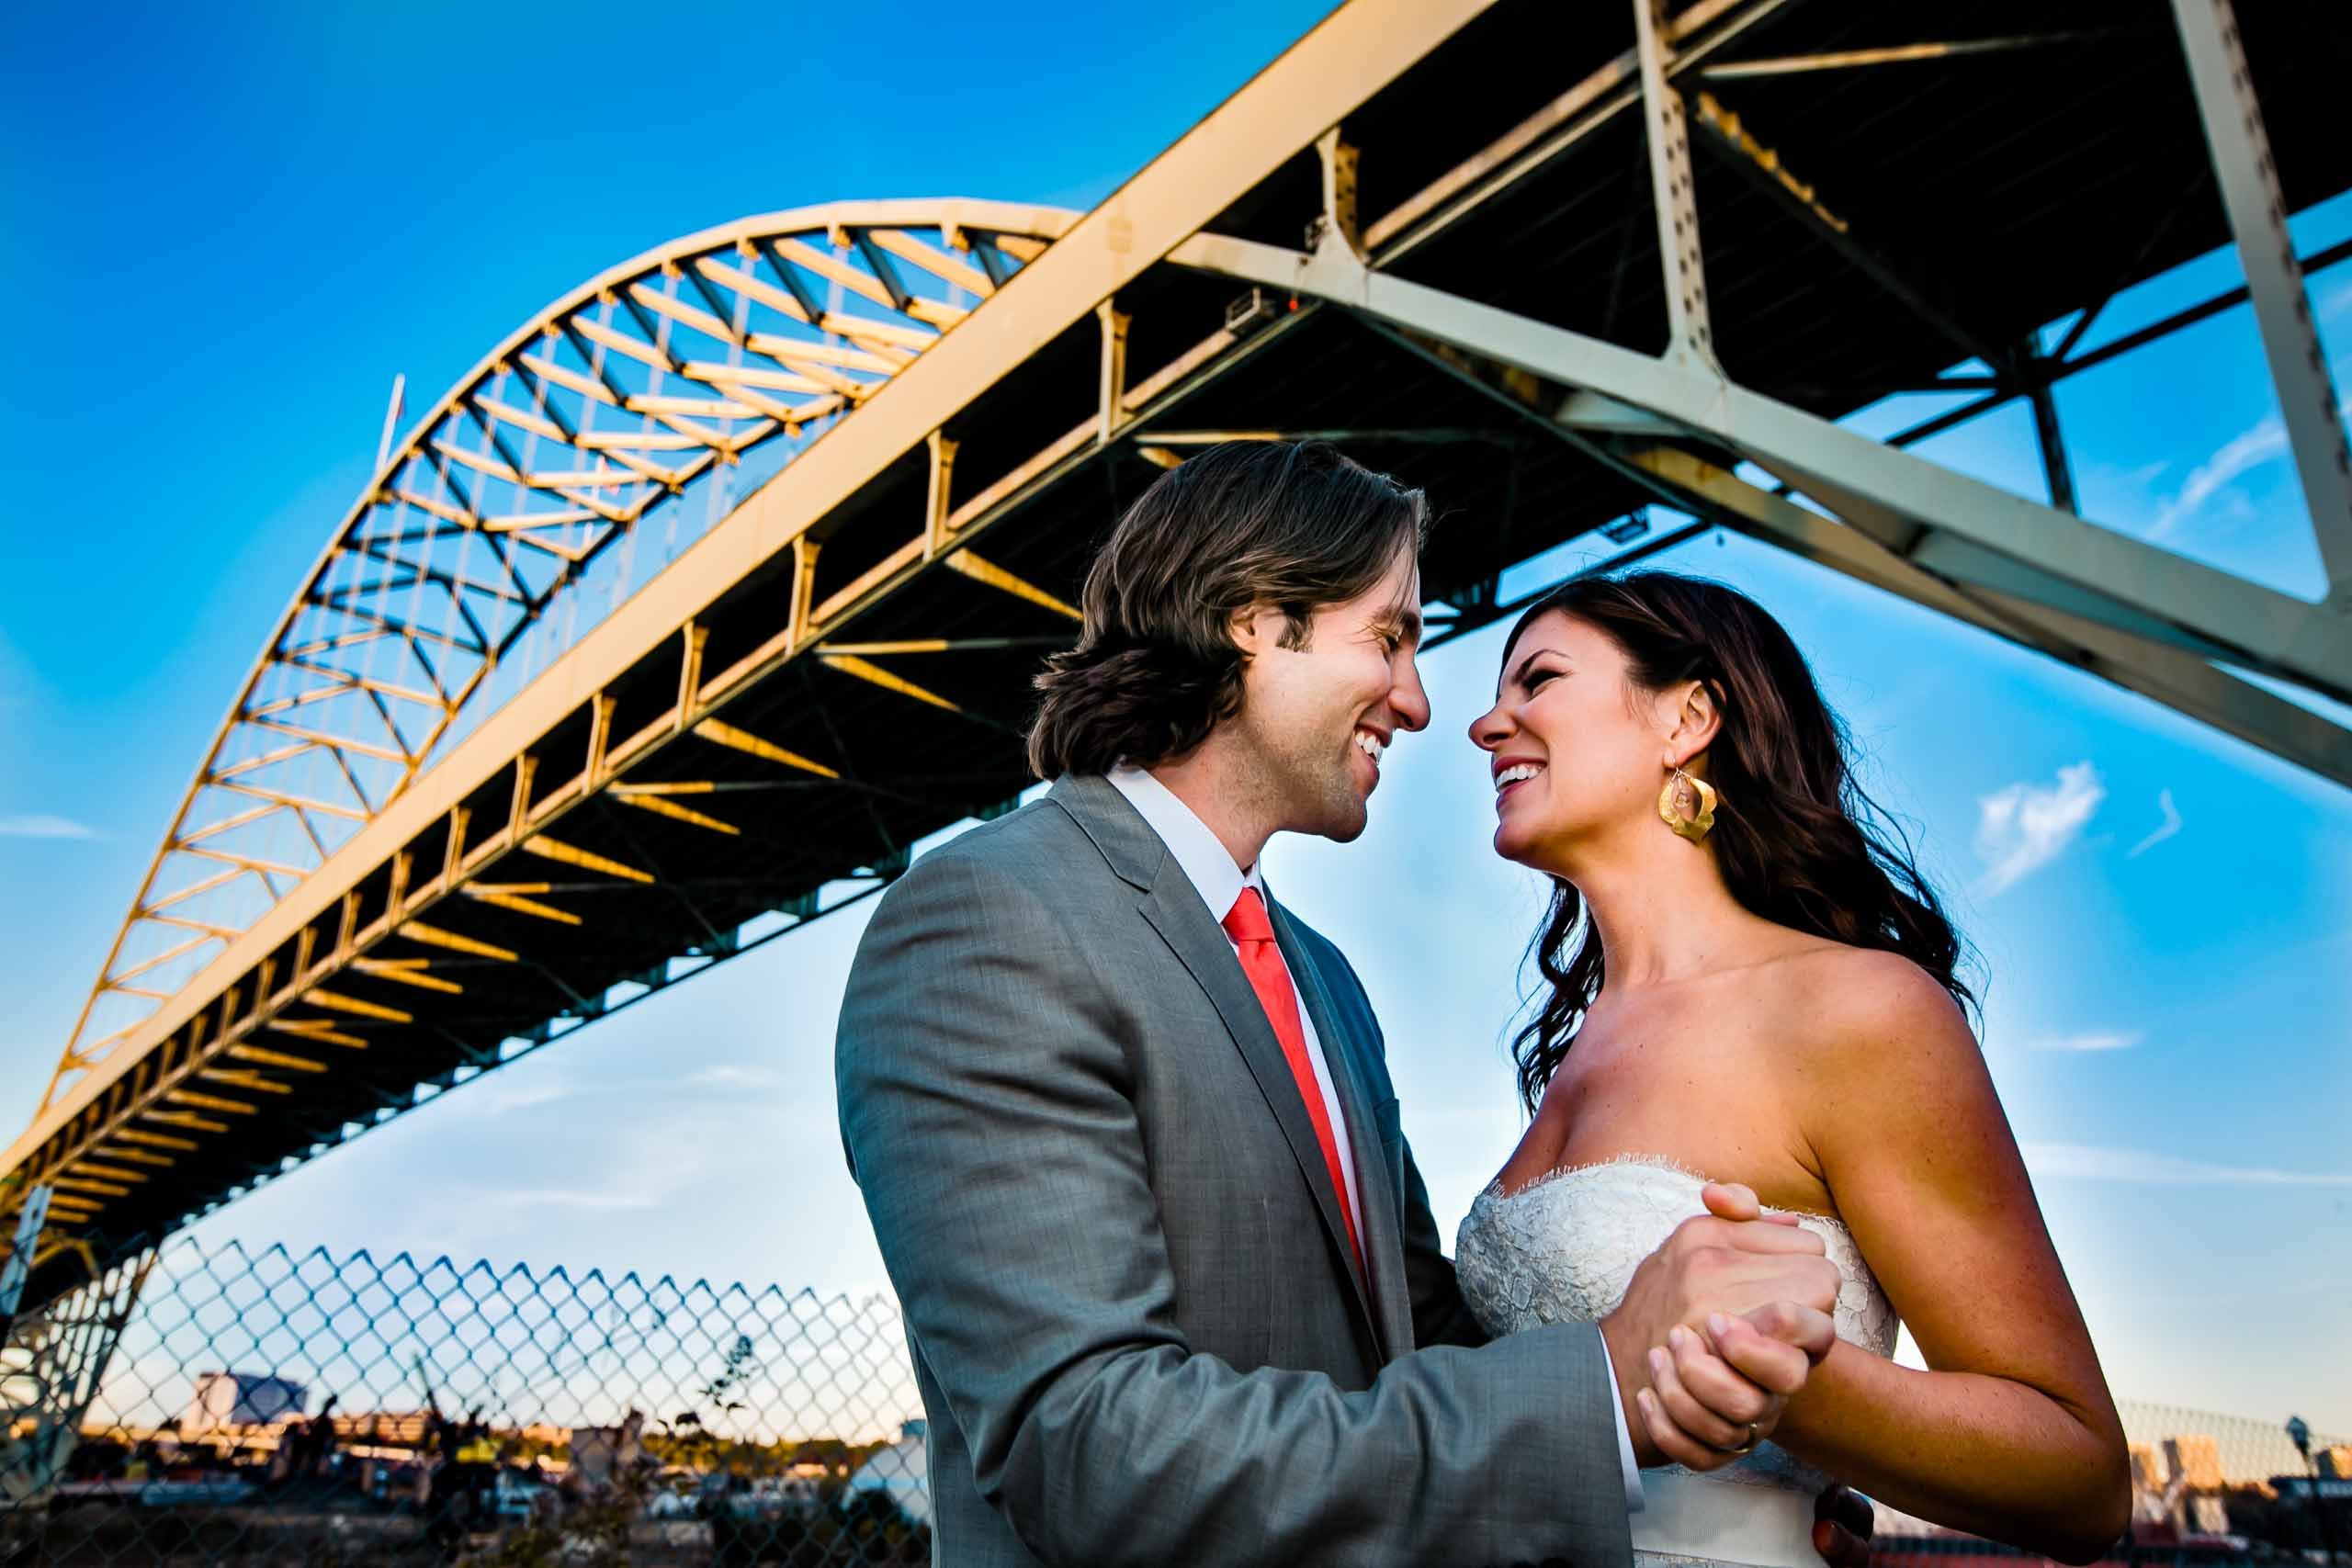 A fun and scenic photo of a bride and groom underneath the 405 bridge during their Portland wedding celebration